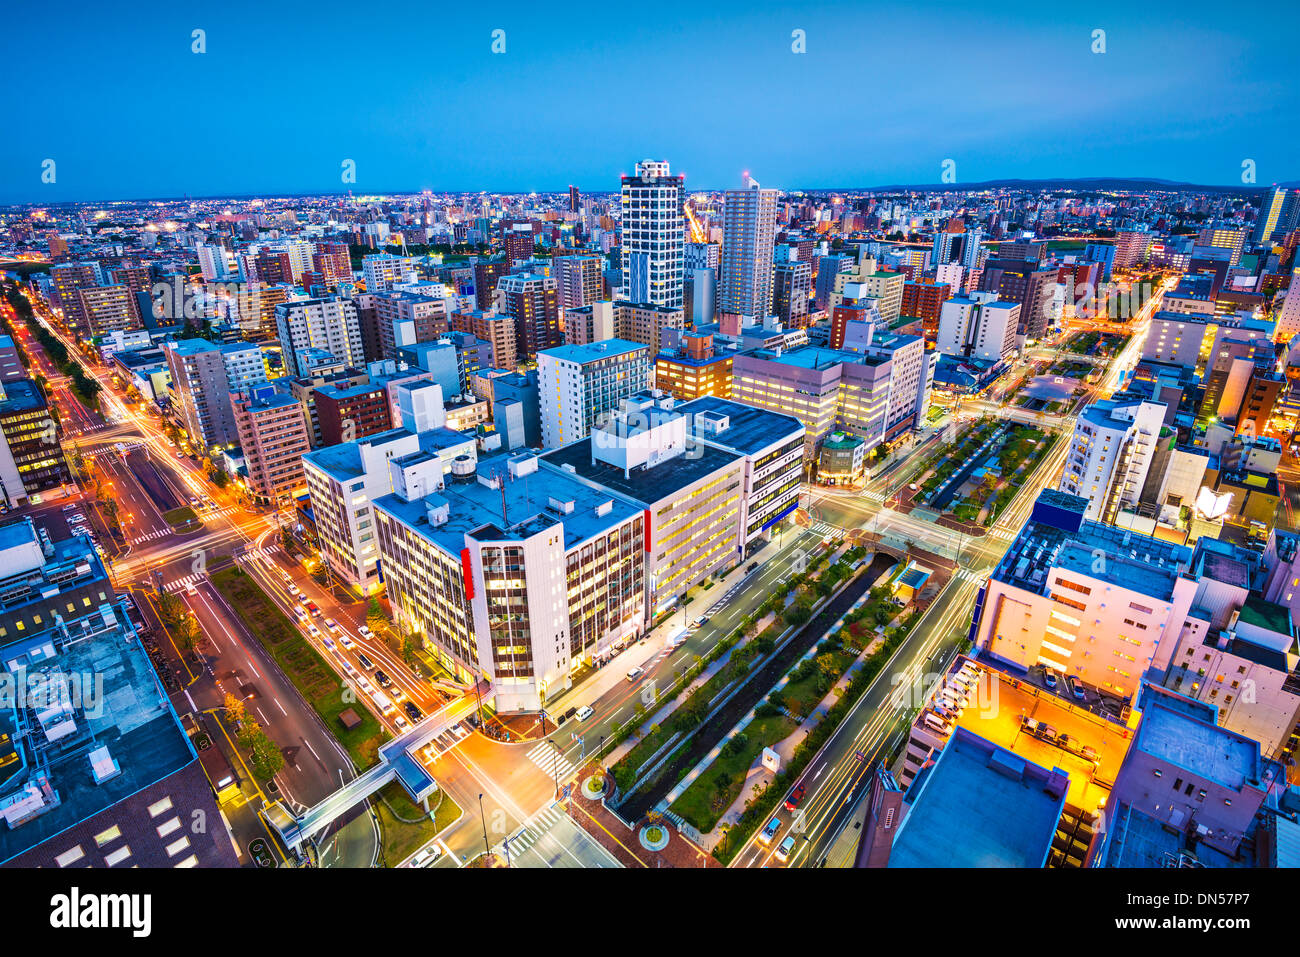 Sapporo, Japan cityscape in the central ward. - Stock Image